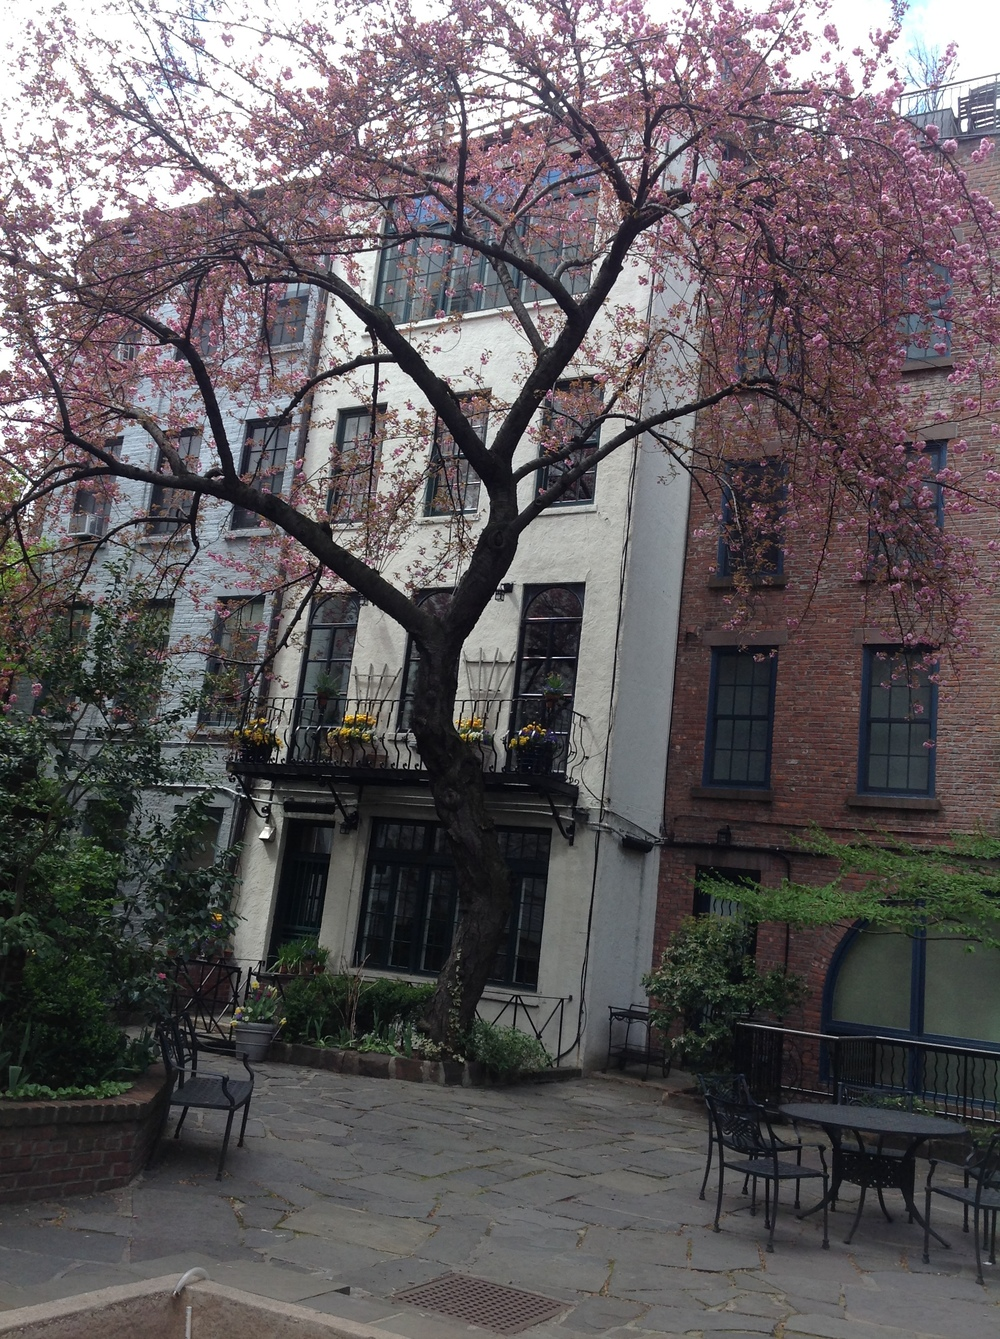 Cherry tree in bloom, West Village, Manhattan, April 27, 2014